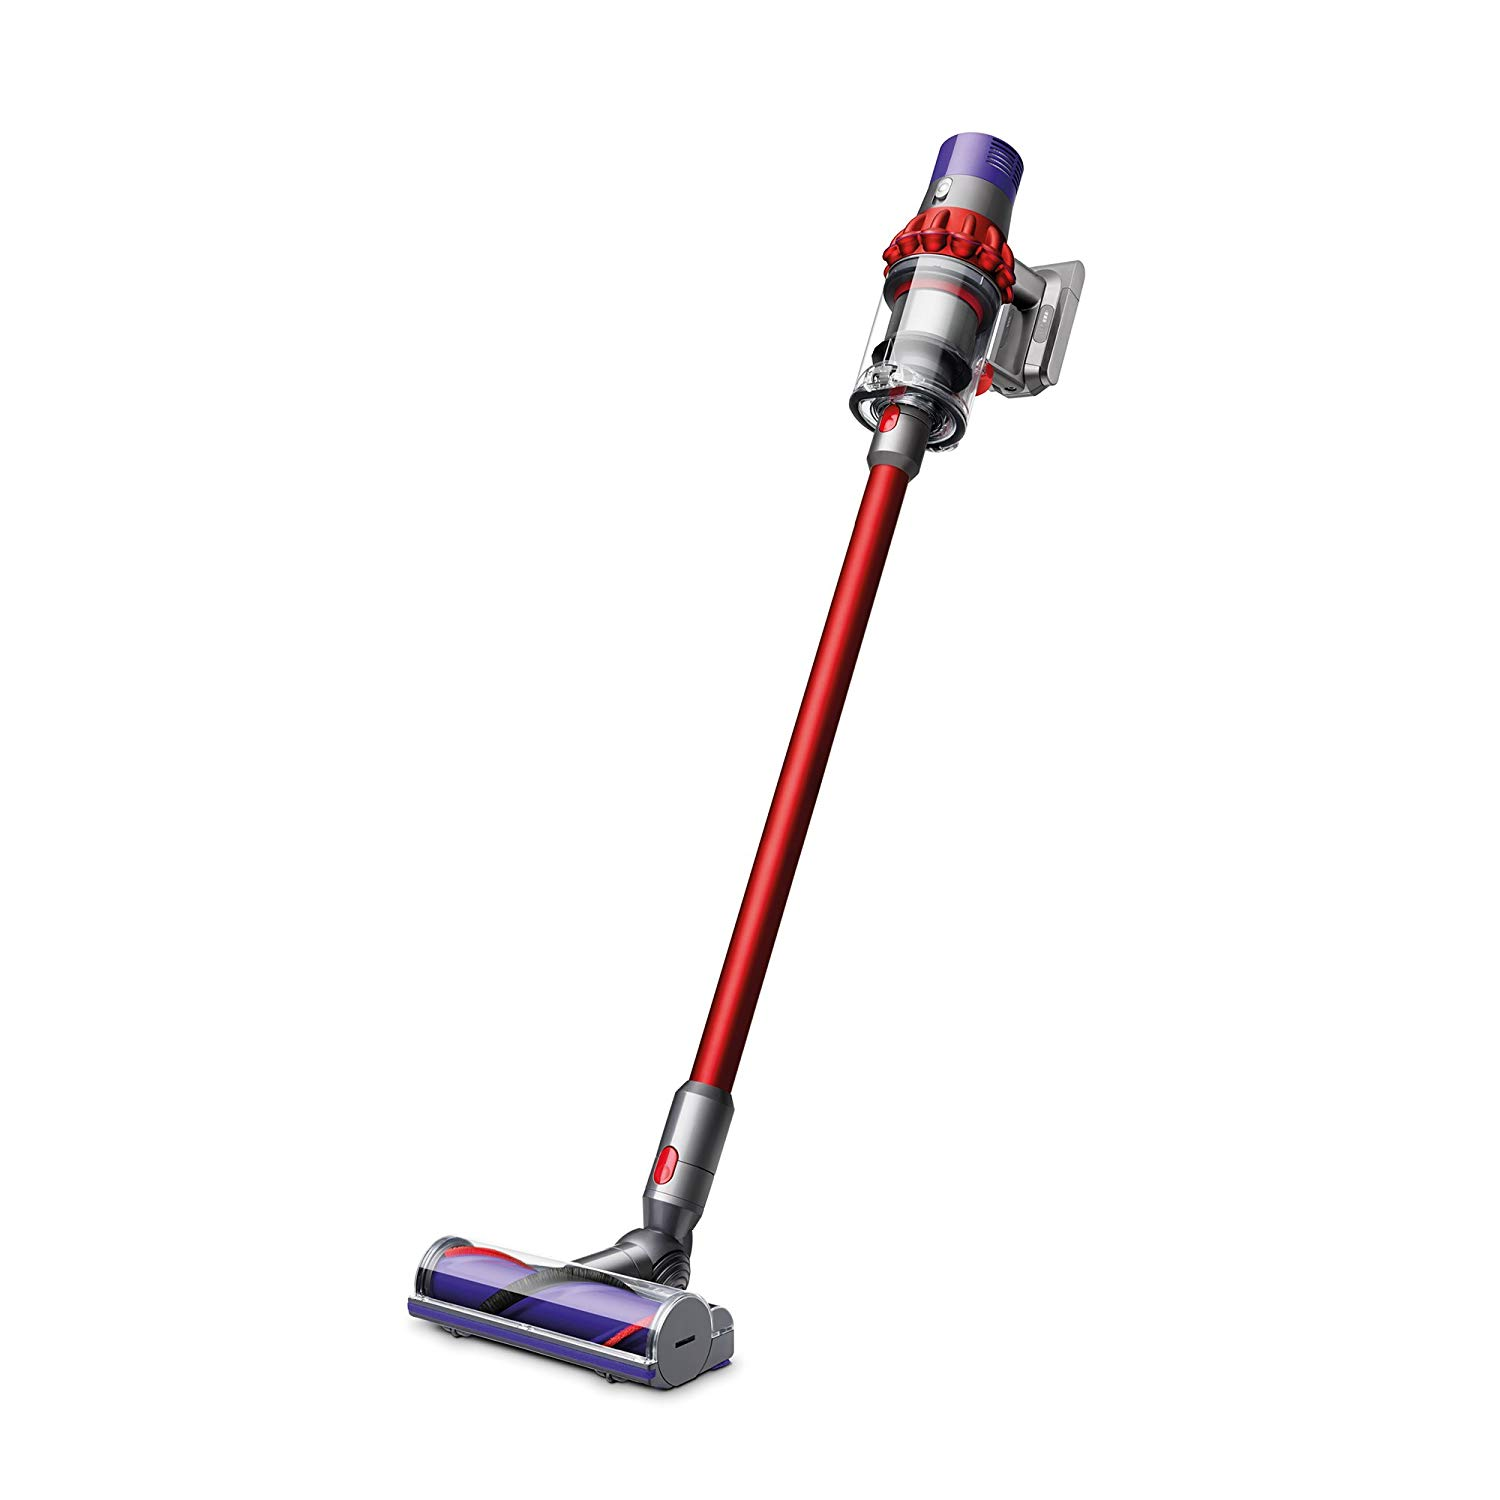 Top 5 Best Stick Vacuum for Pet Hair 2019: Buying Guide